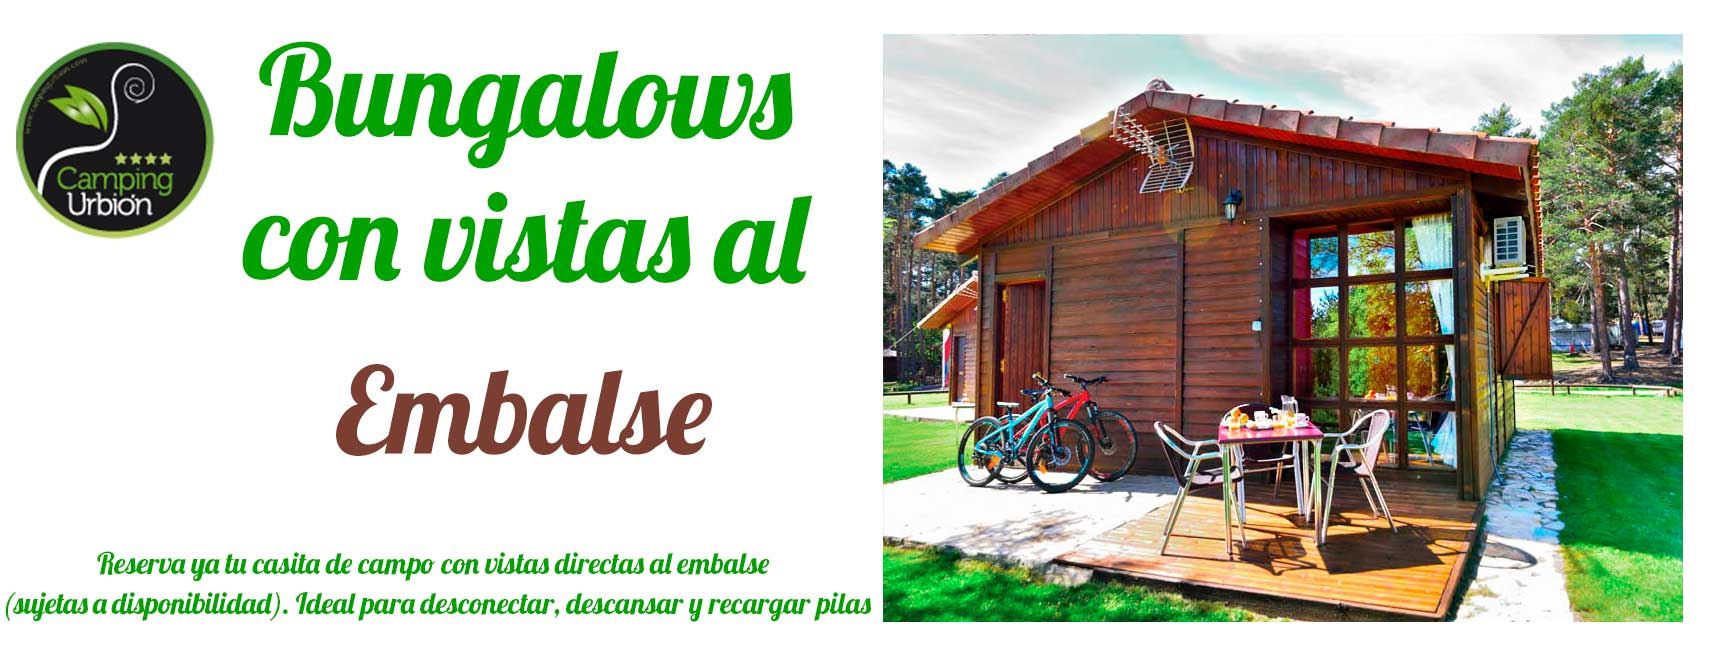 BUNGALOWS-VISTAS-EMBALSE